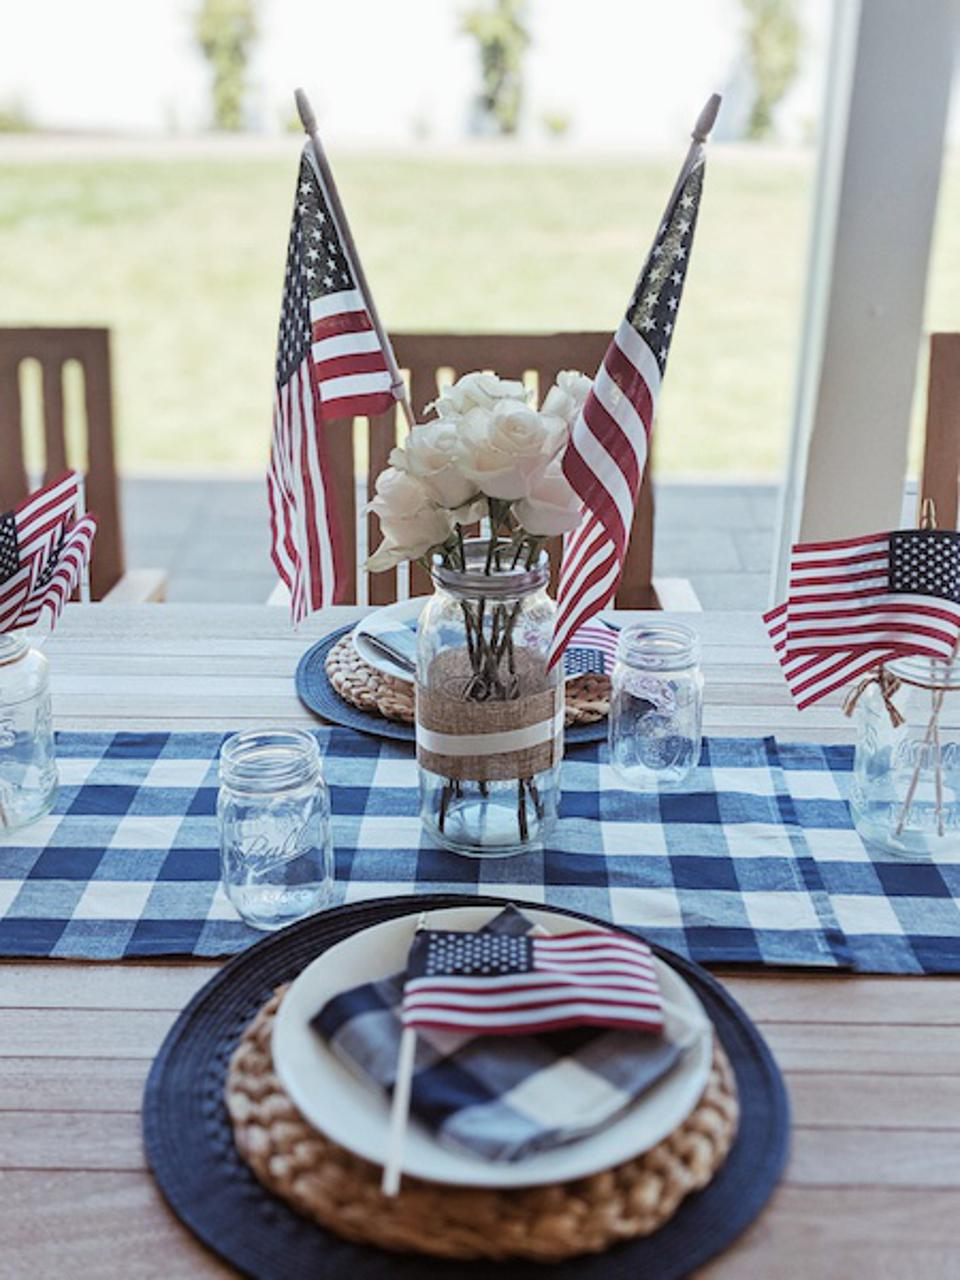 Table with a gingham runner, napkins, decorative American flags and white plates on blue and rattan chargers.